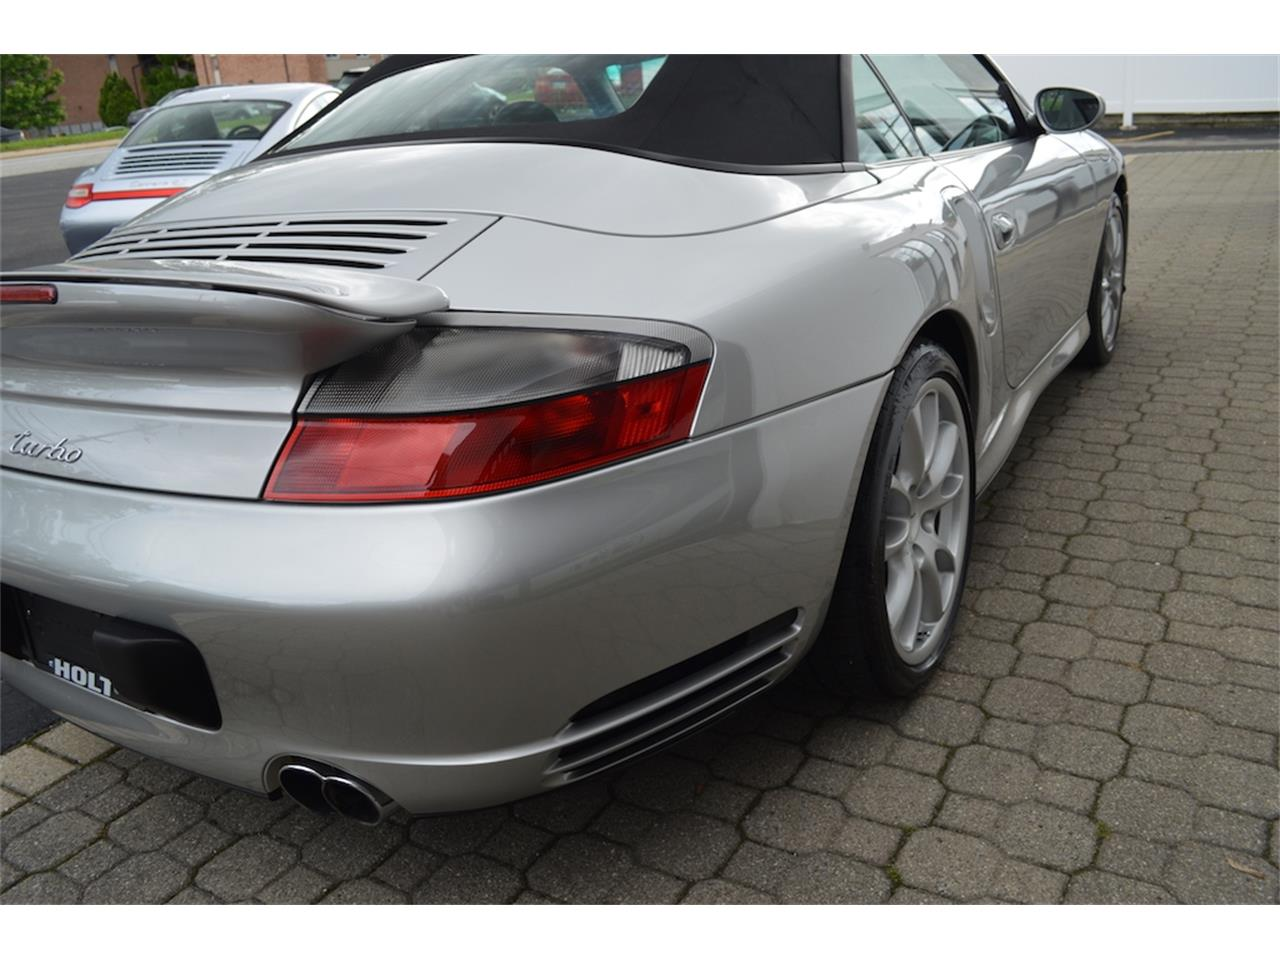 Large Picture of 2004 Porsche 996 Turbo Cabriolet Offered by Holt Motorsports - NQV0